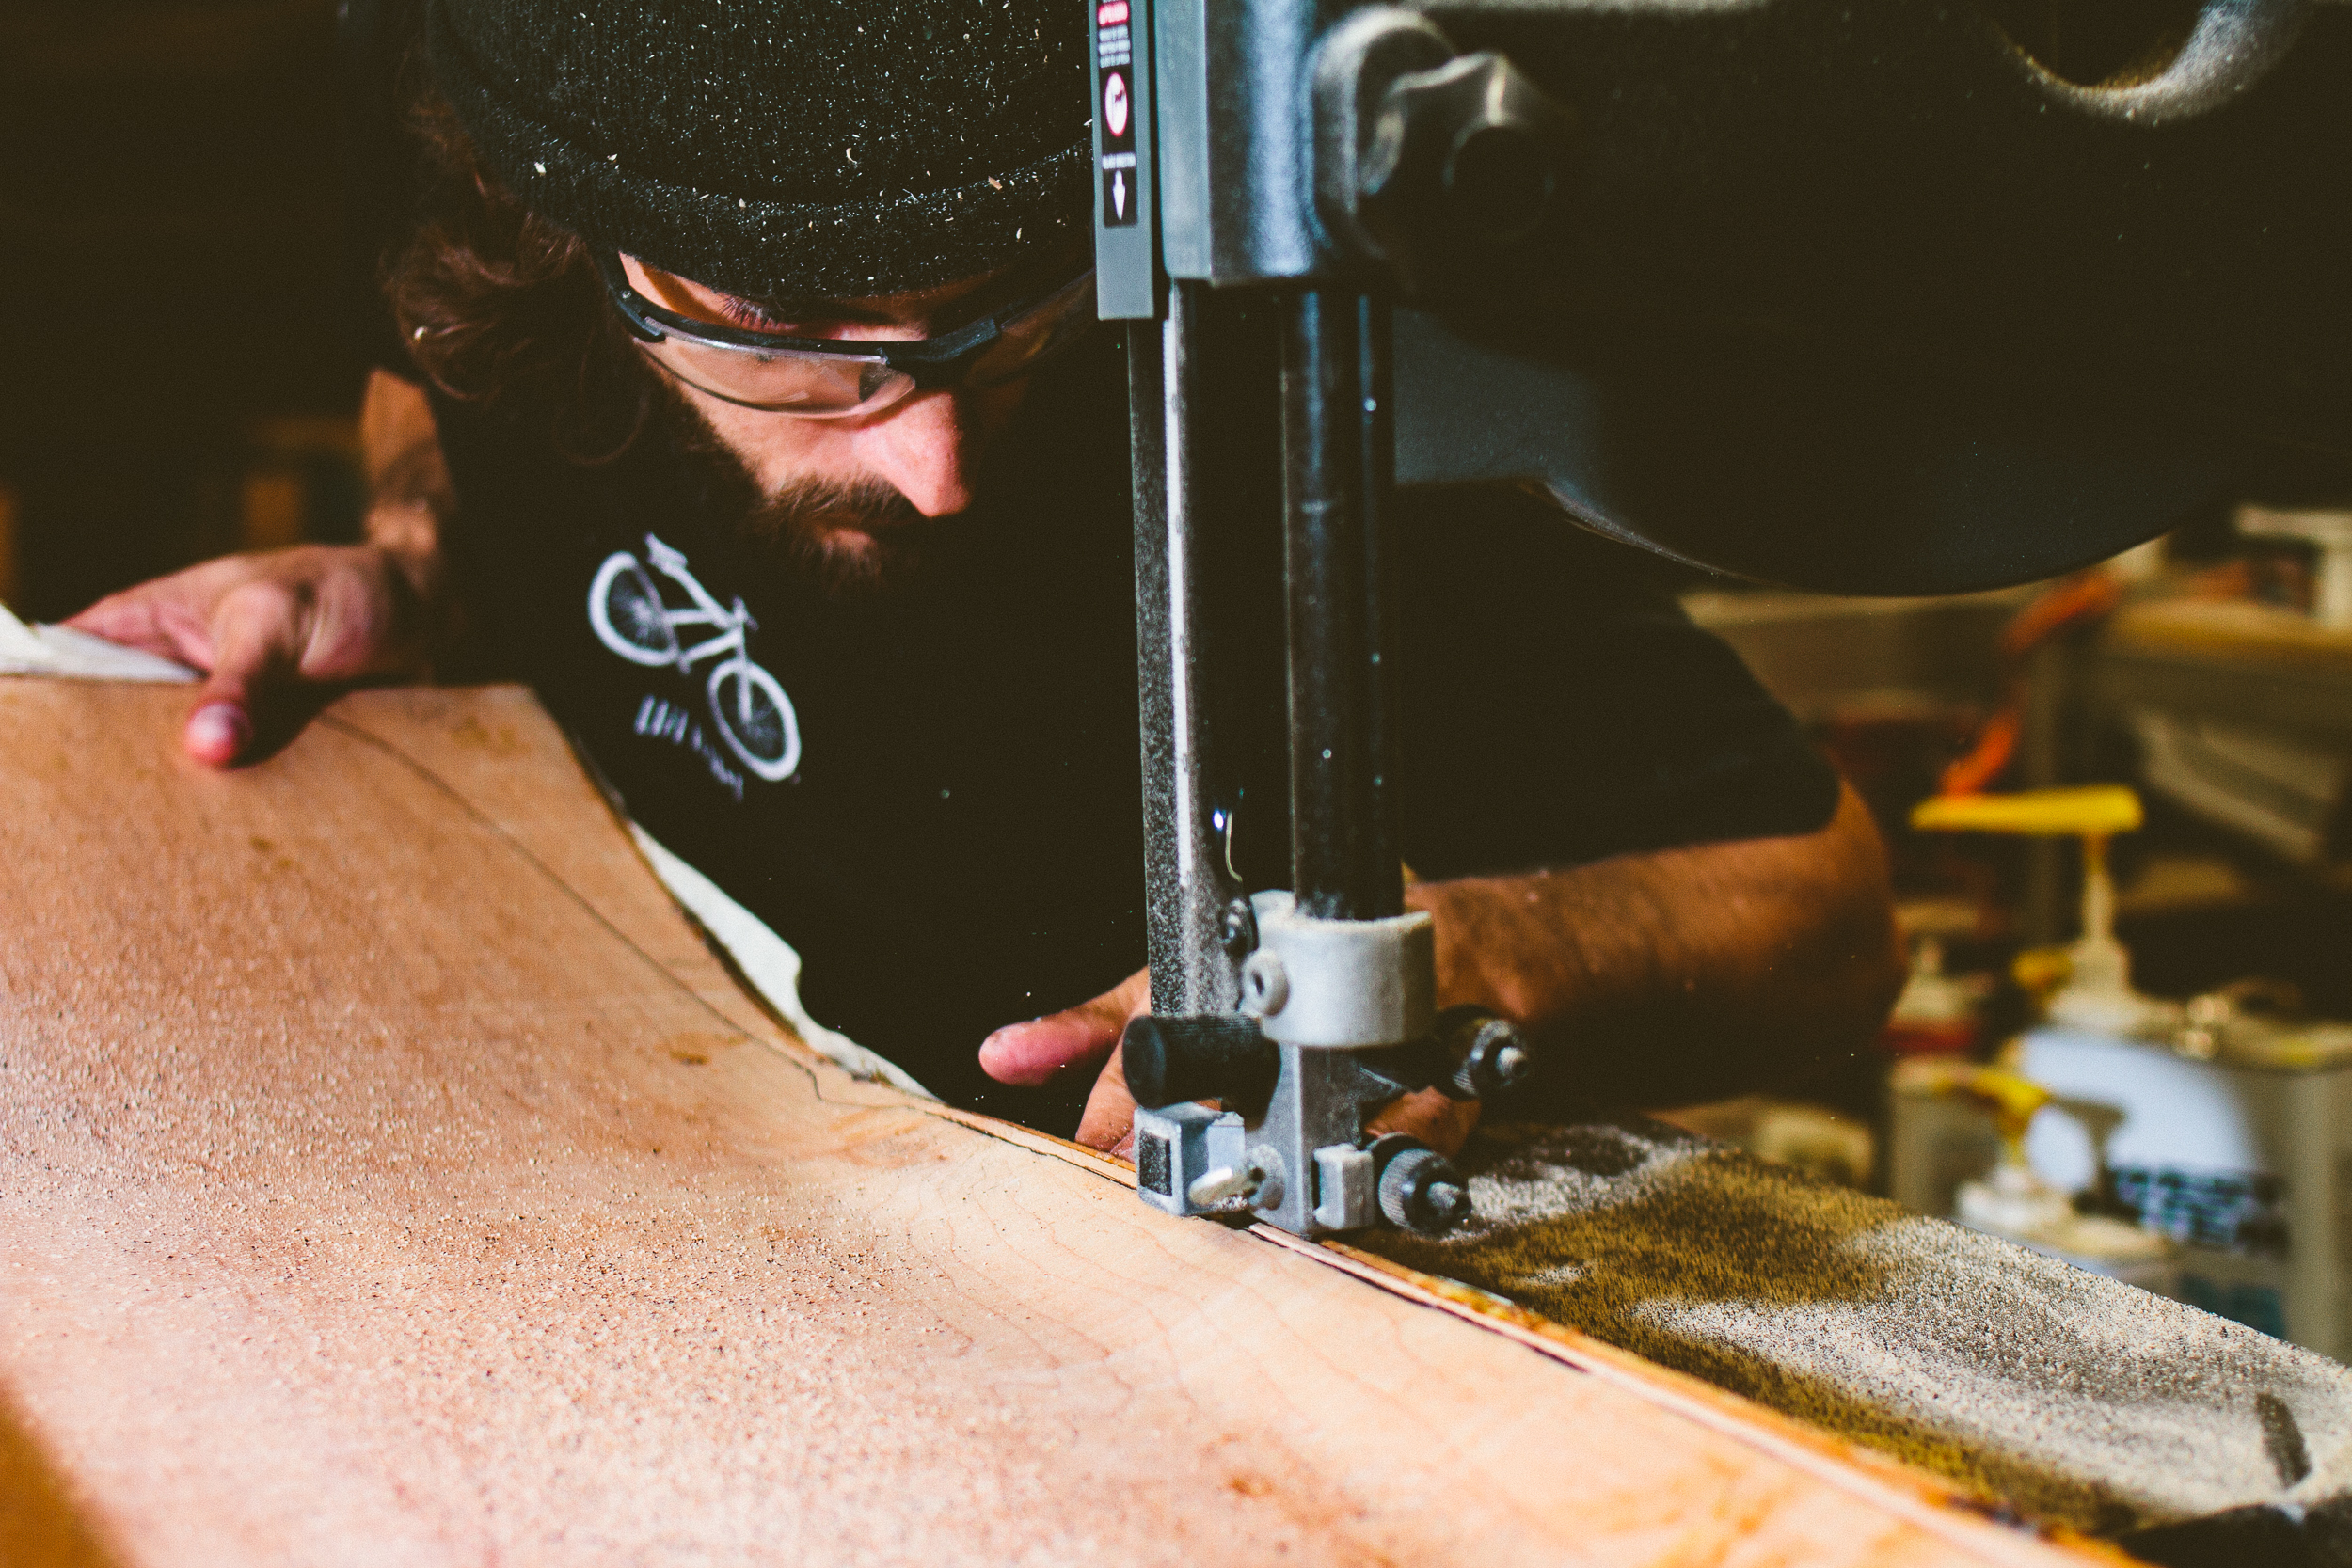 Gibson cutting out a freshly pressed board on the band saw.